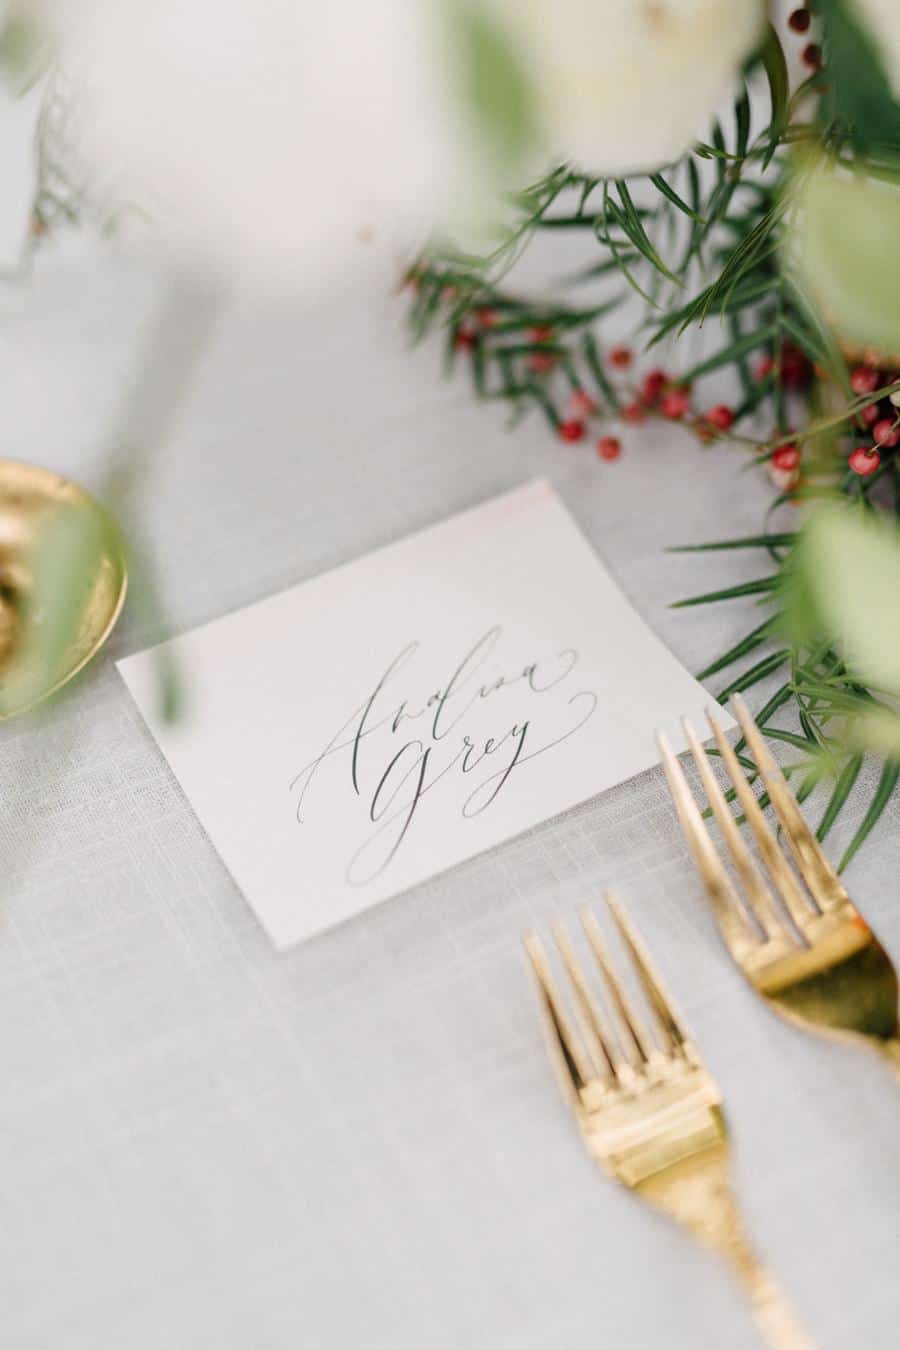 winter-garden-shoot-placecards-Hello-Maurelle.jpg